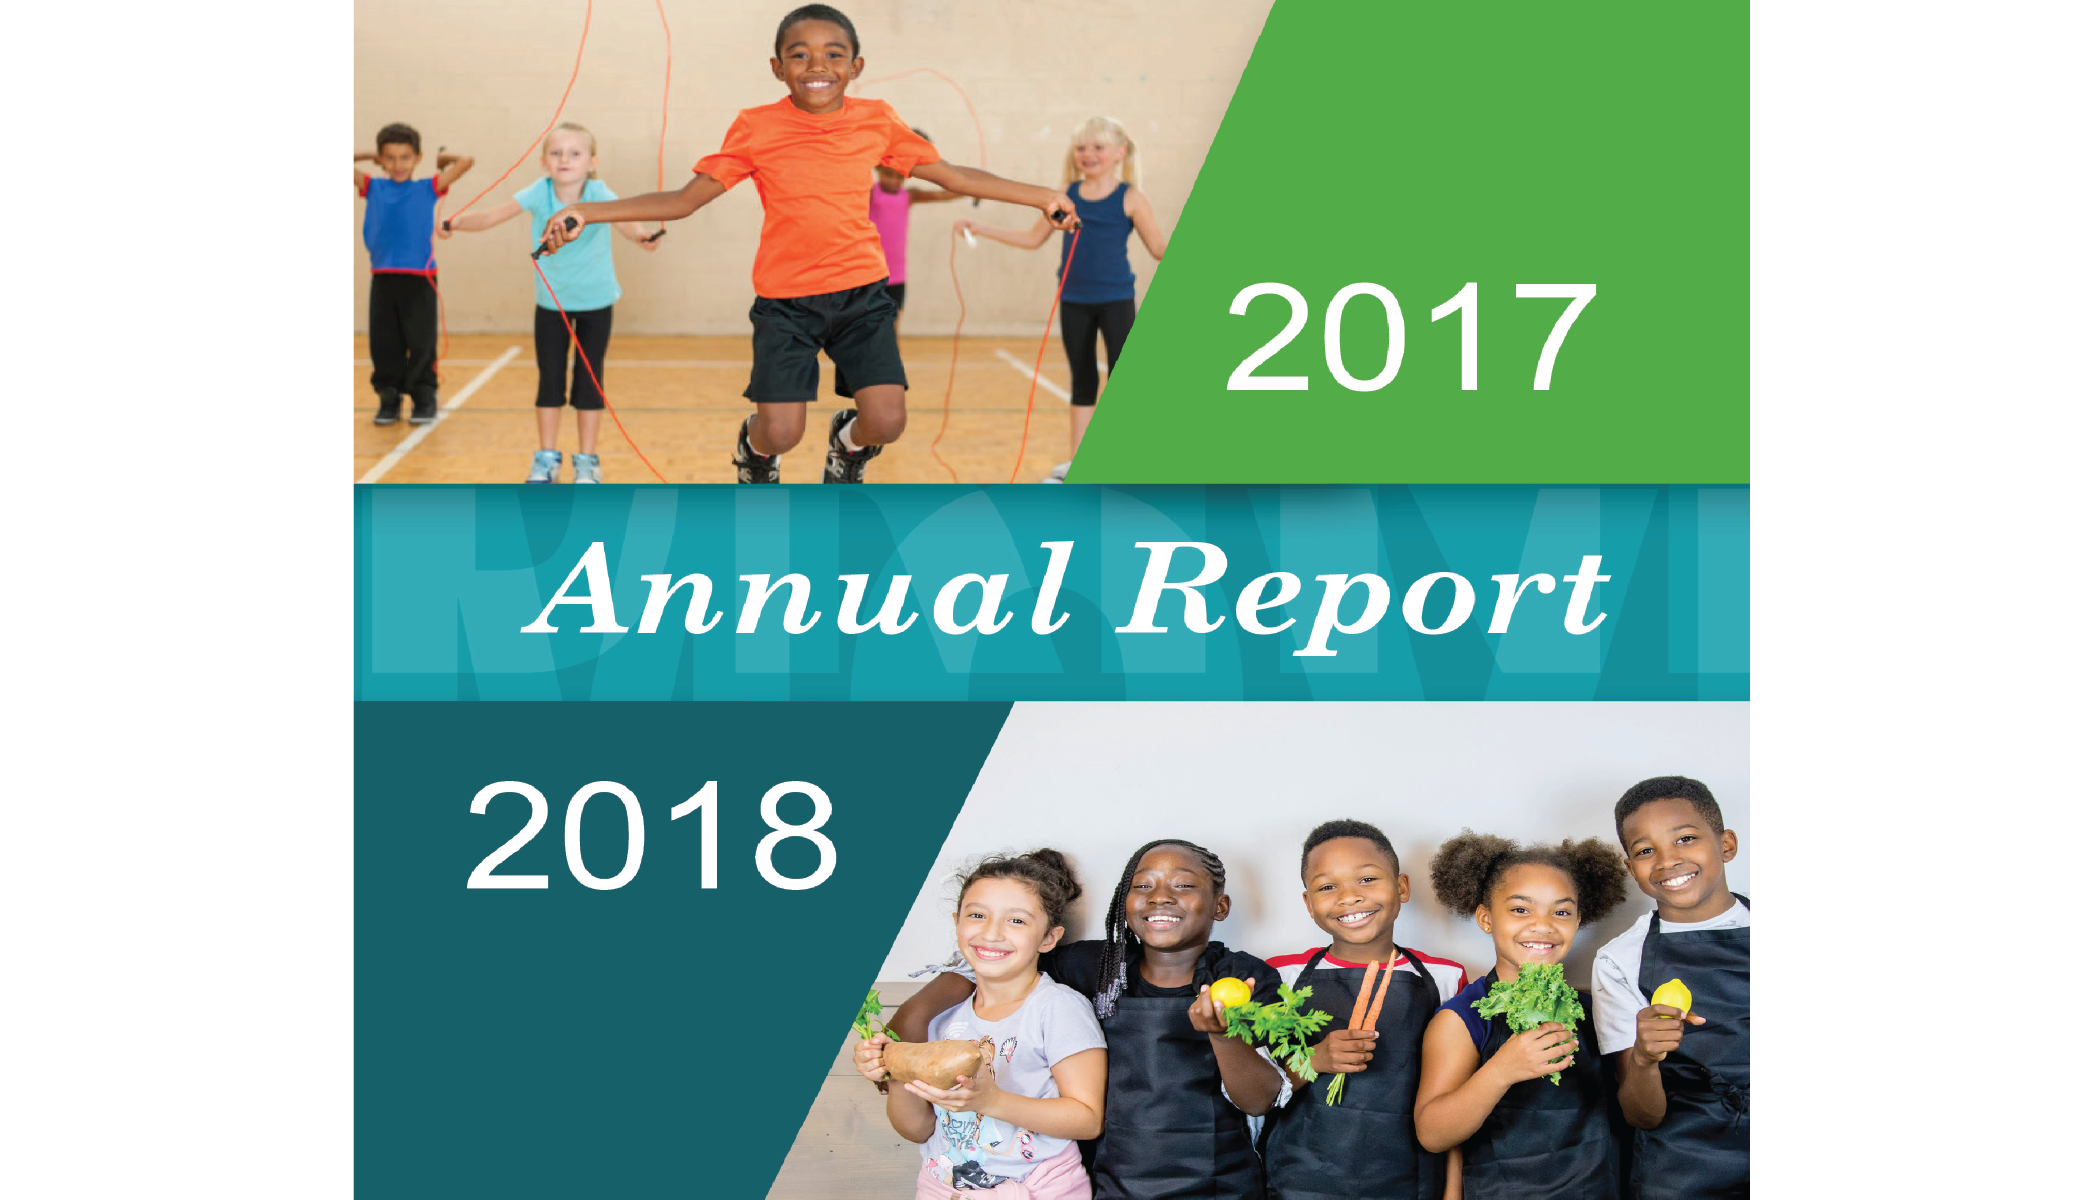 Cover-Page-from-HealthMPowers-Annual-Report-2017-2018-cropped-2